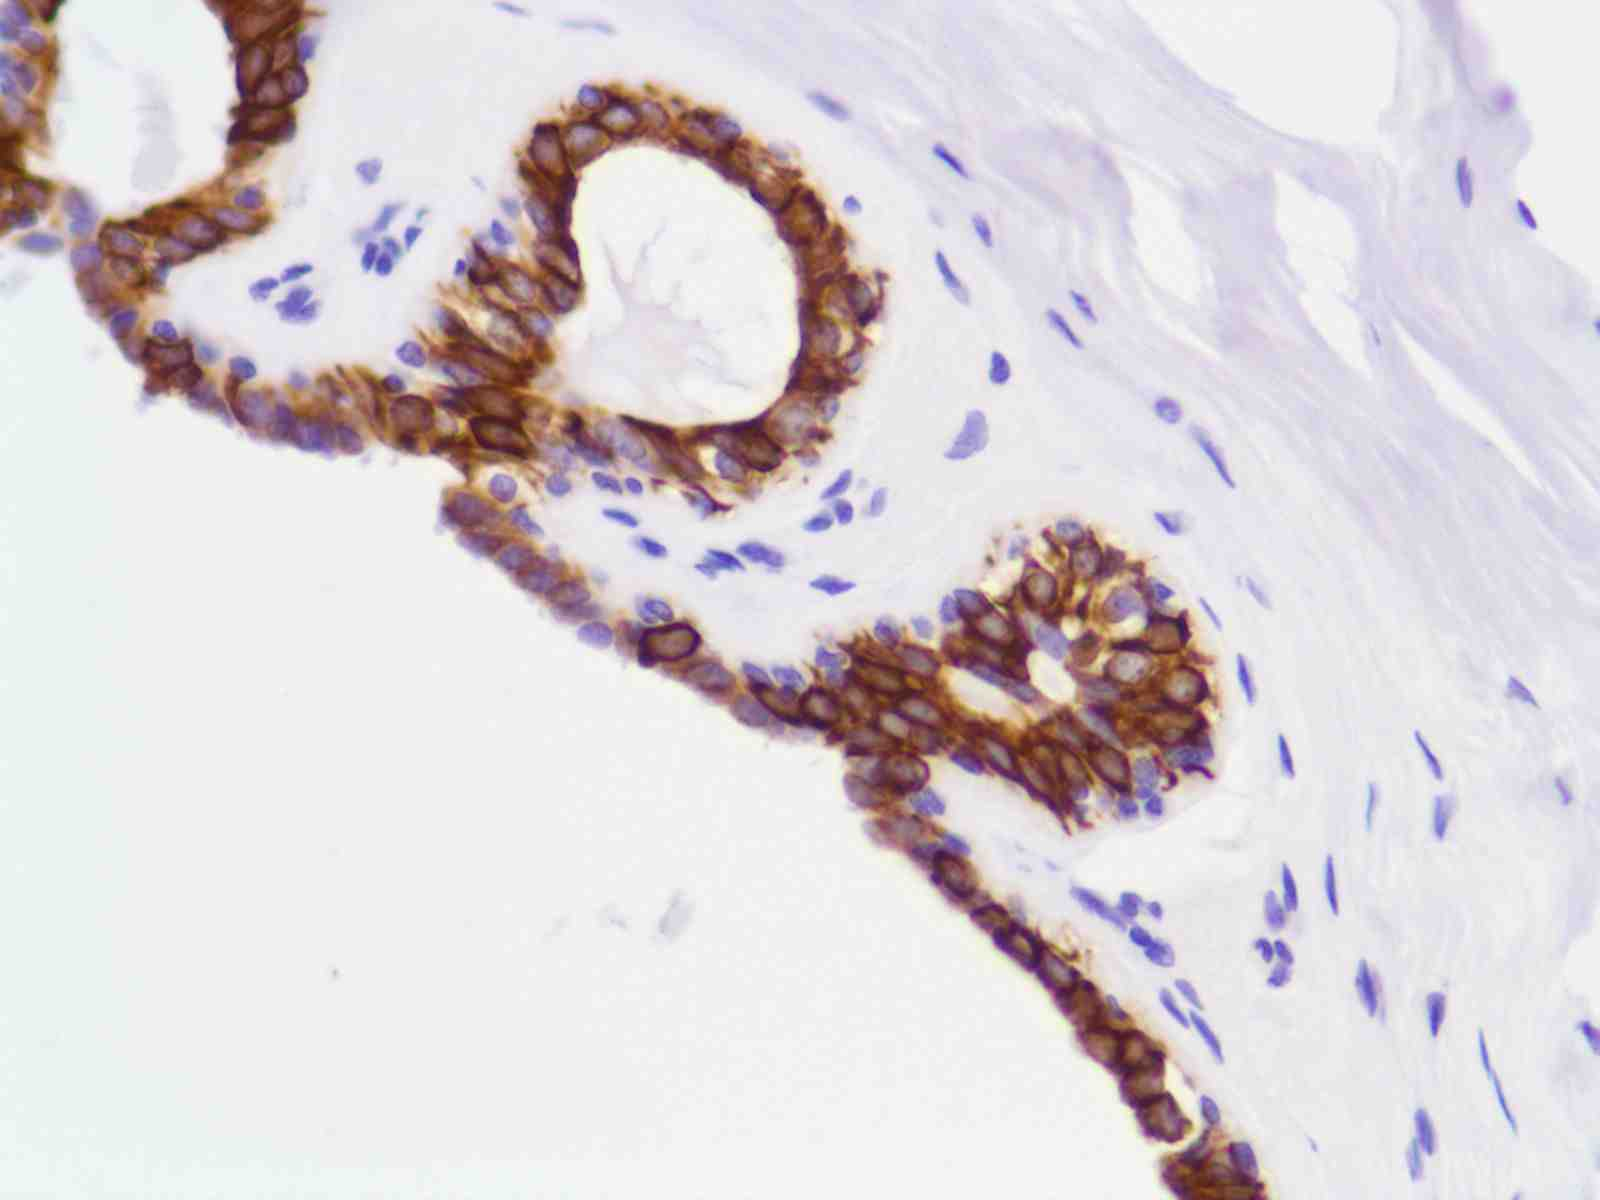 Human Breast stained with anti-Keratin 8 antibody